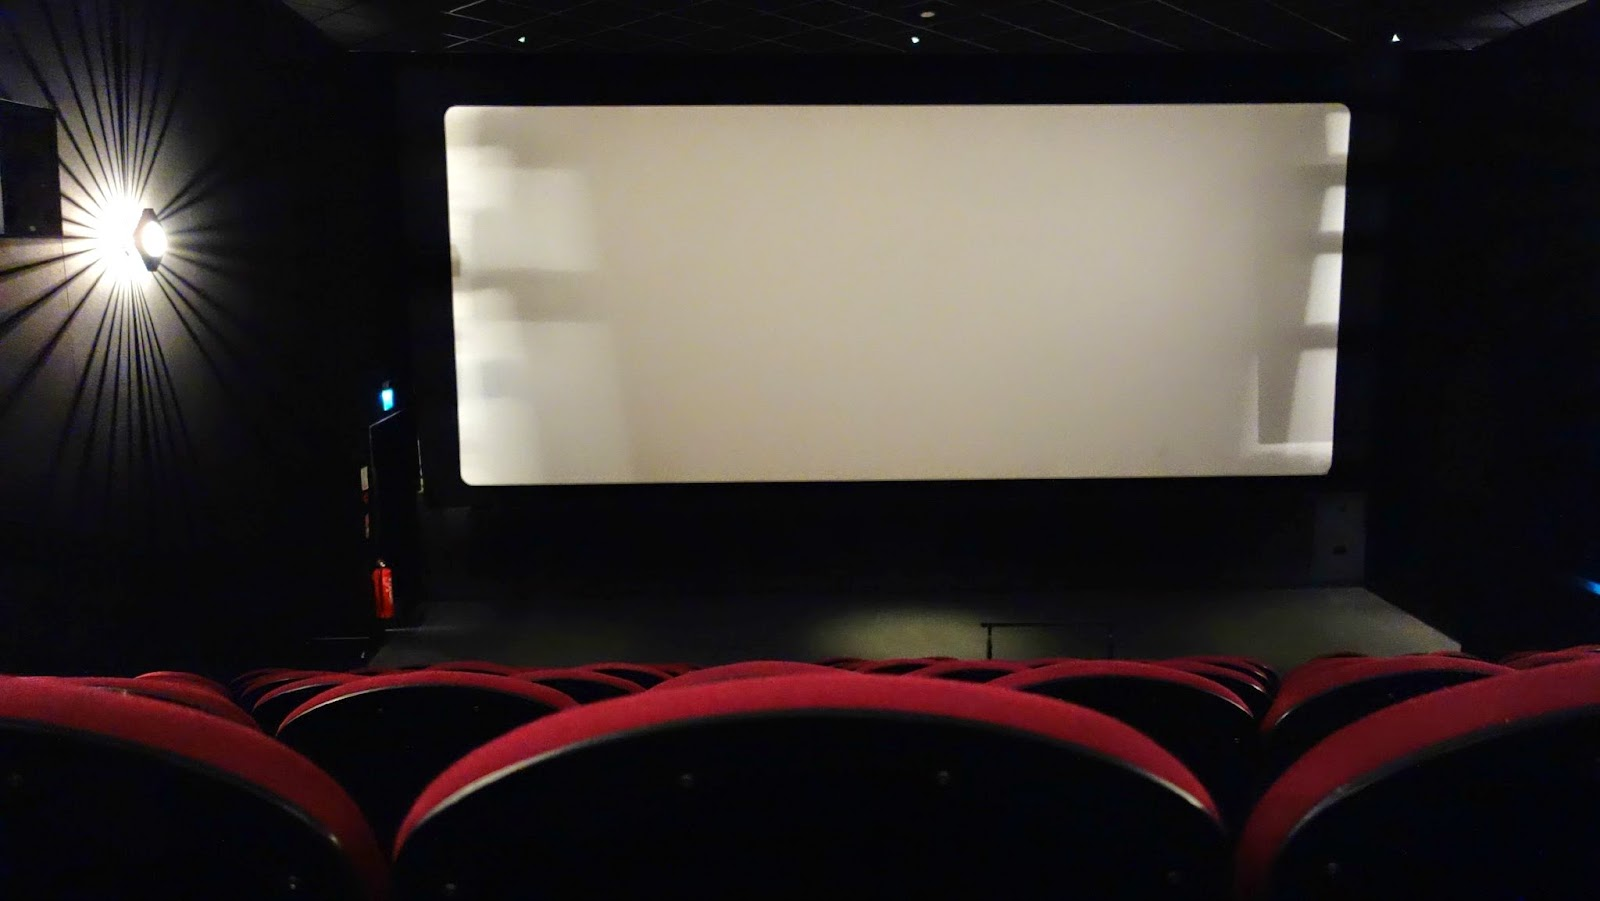 Cardiff Cineworld Cinema